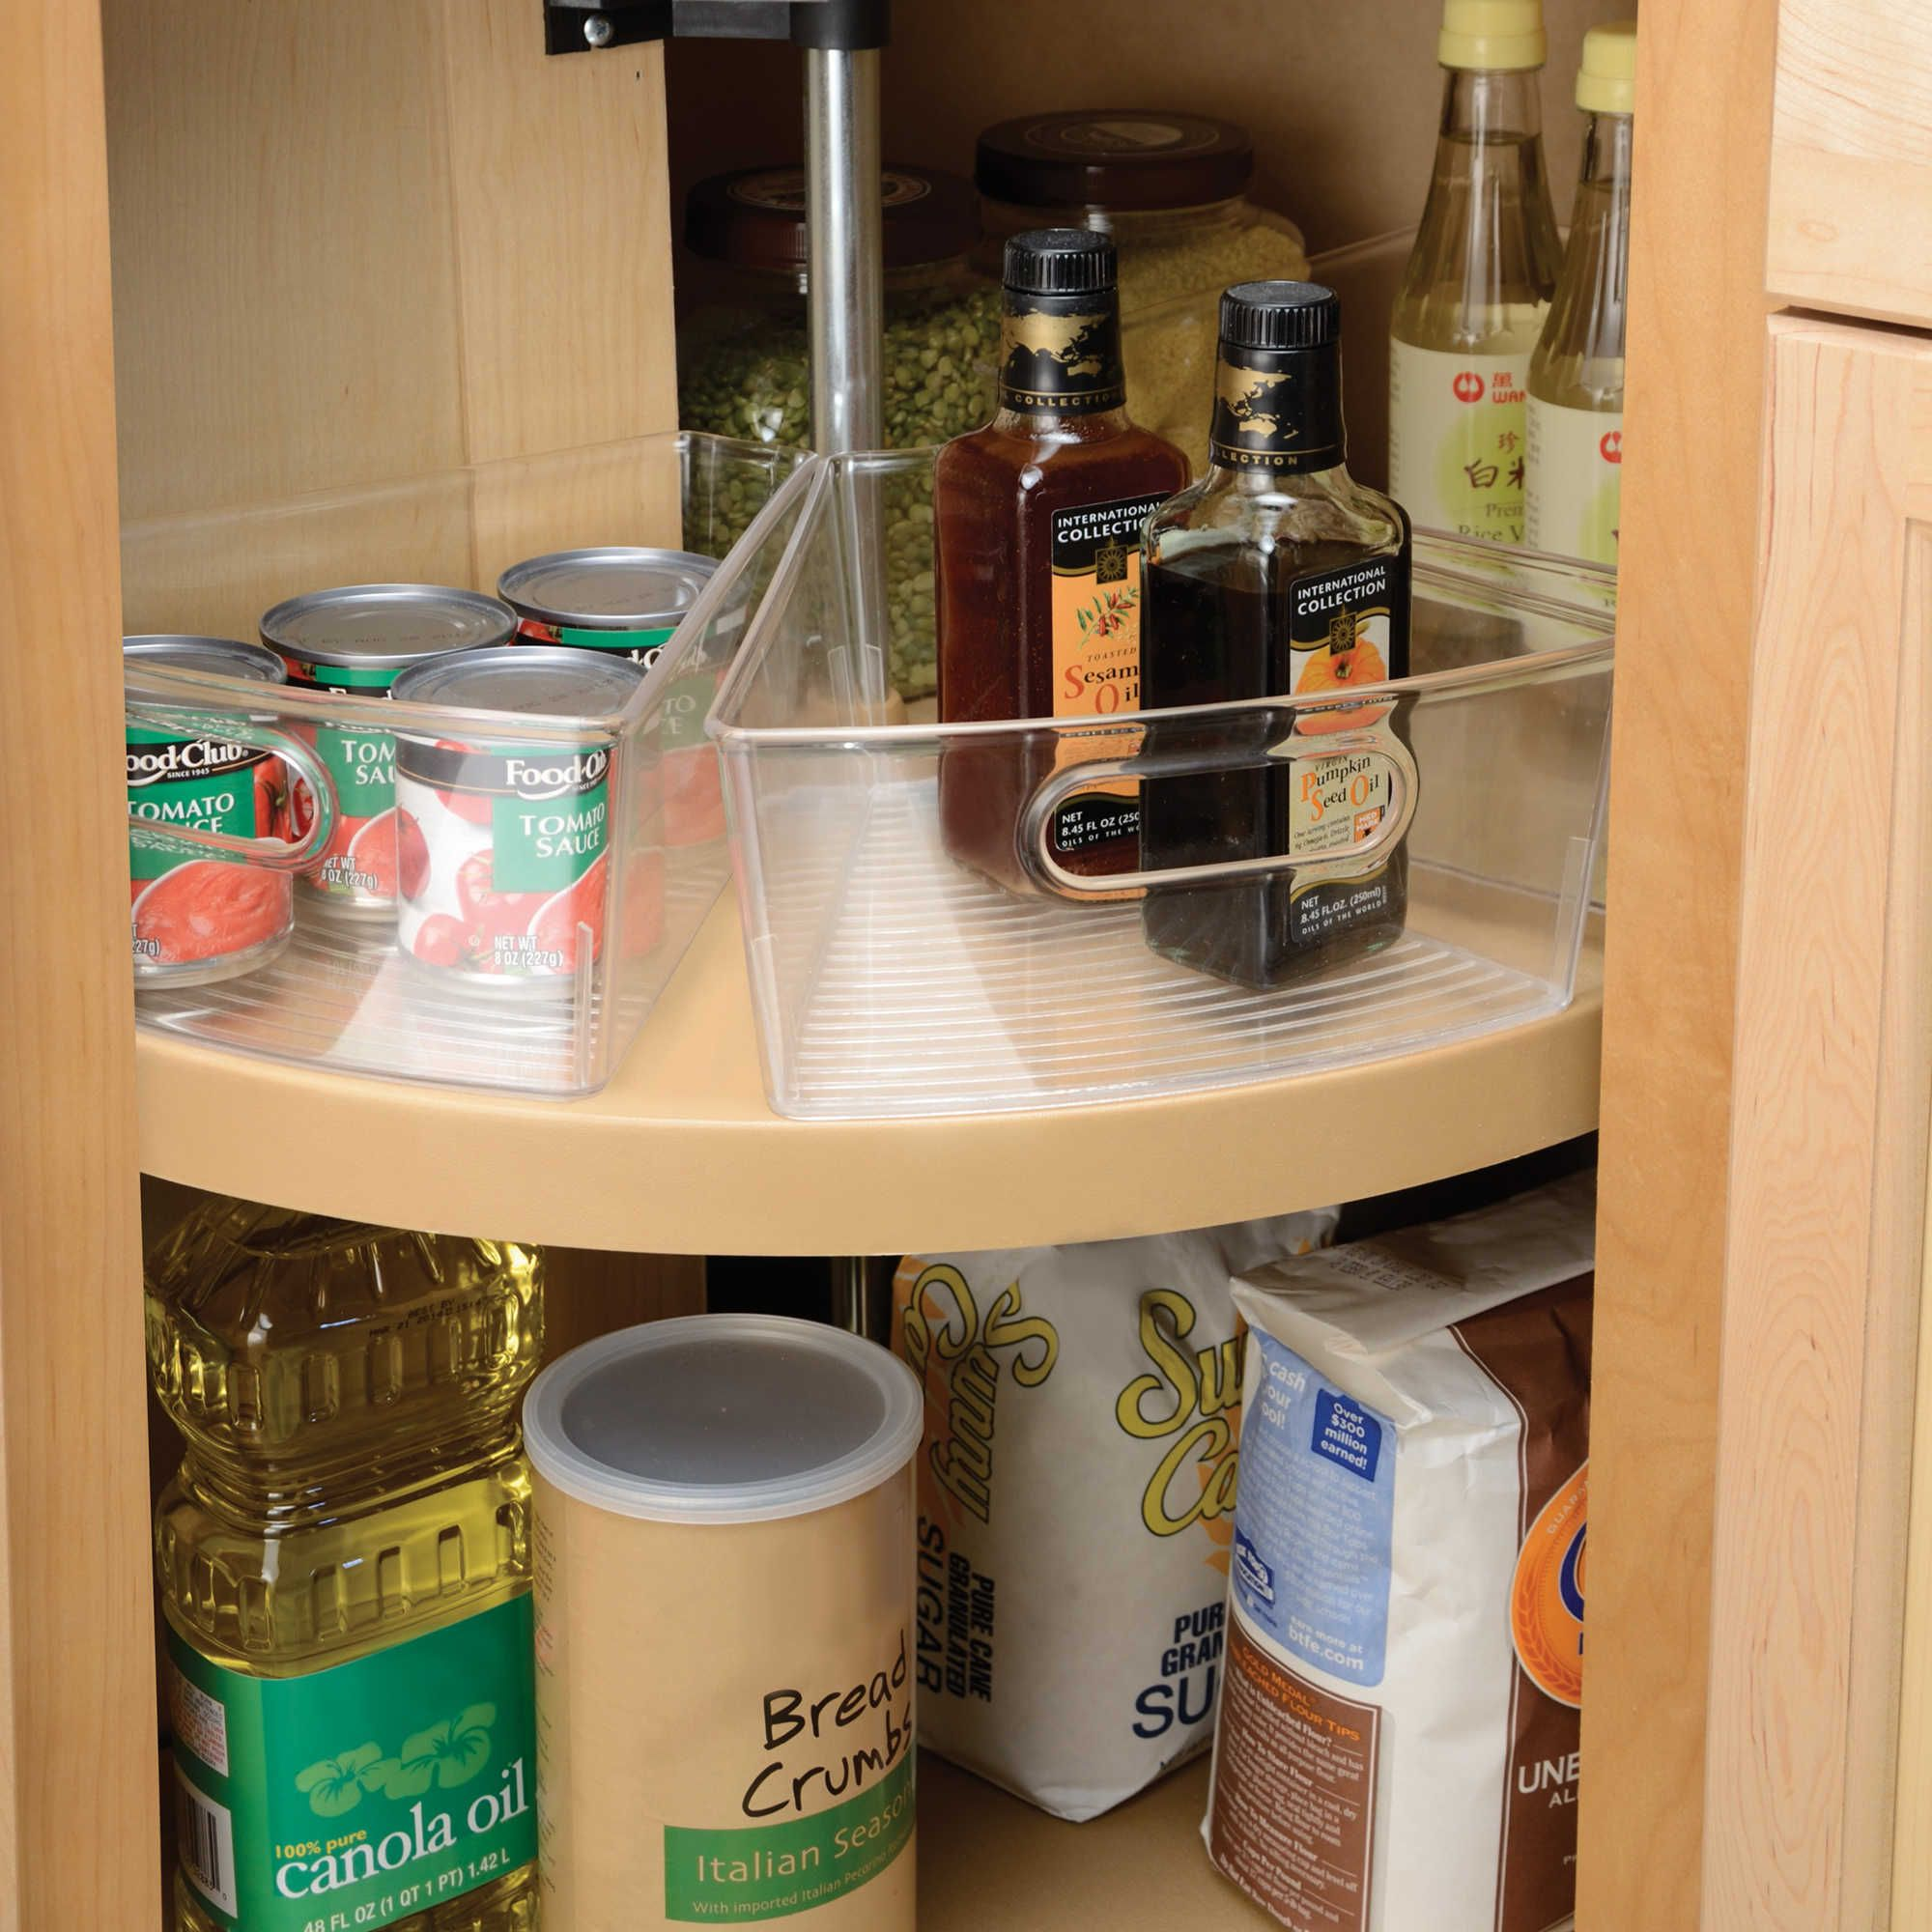 The durable clear plastic Cabinet Binz Lazy Susan Storage Bin from